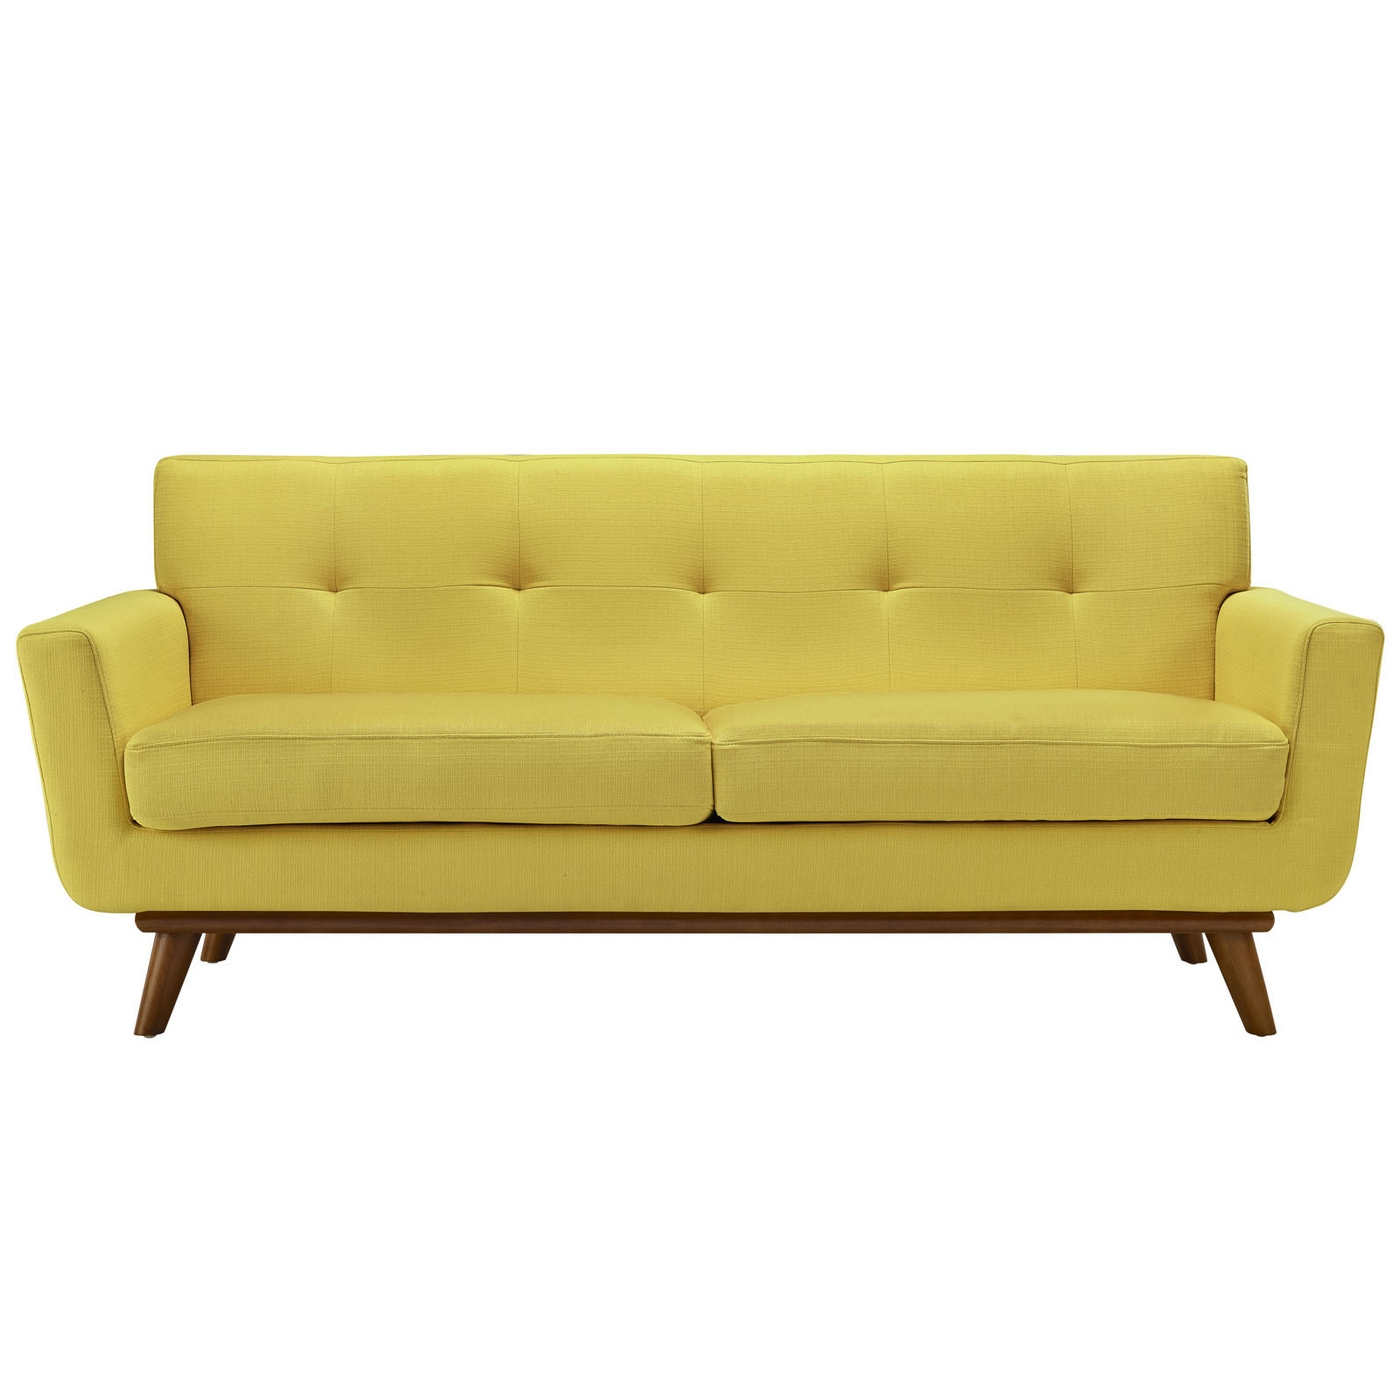 engage contemporary upholstered loveseat with wooden legs